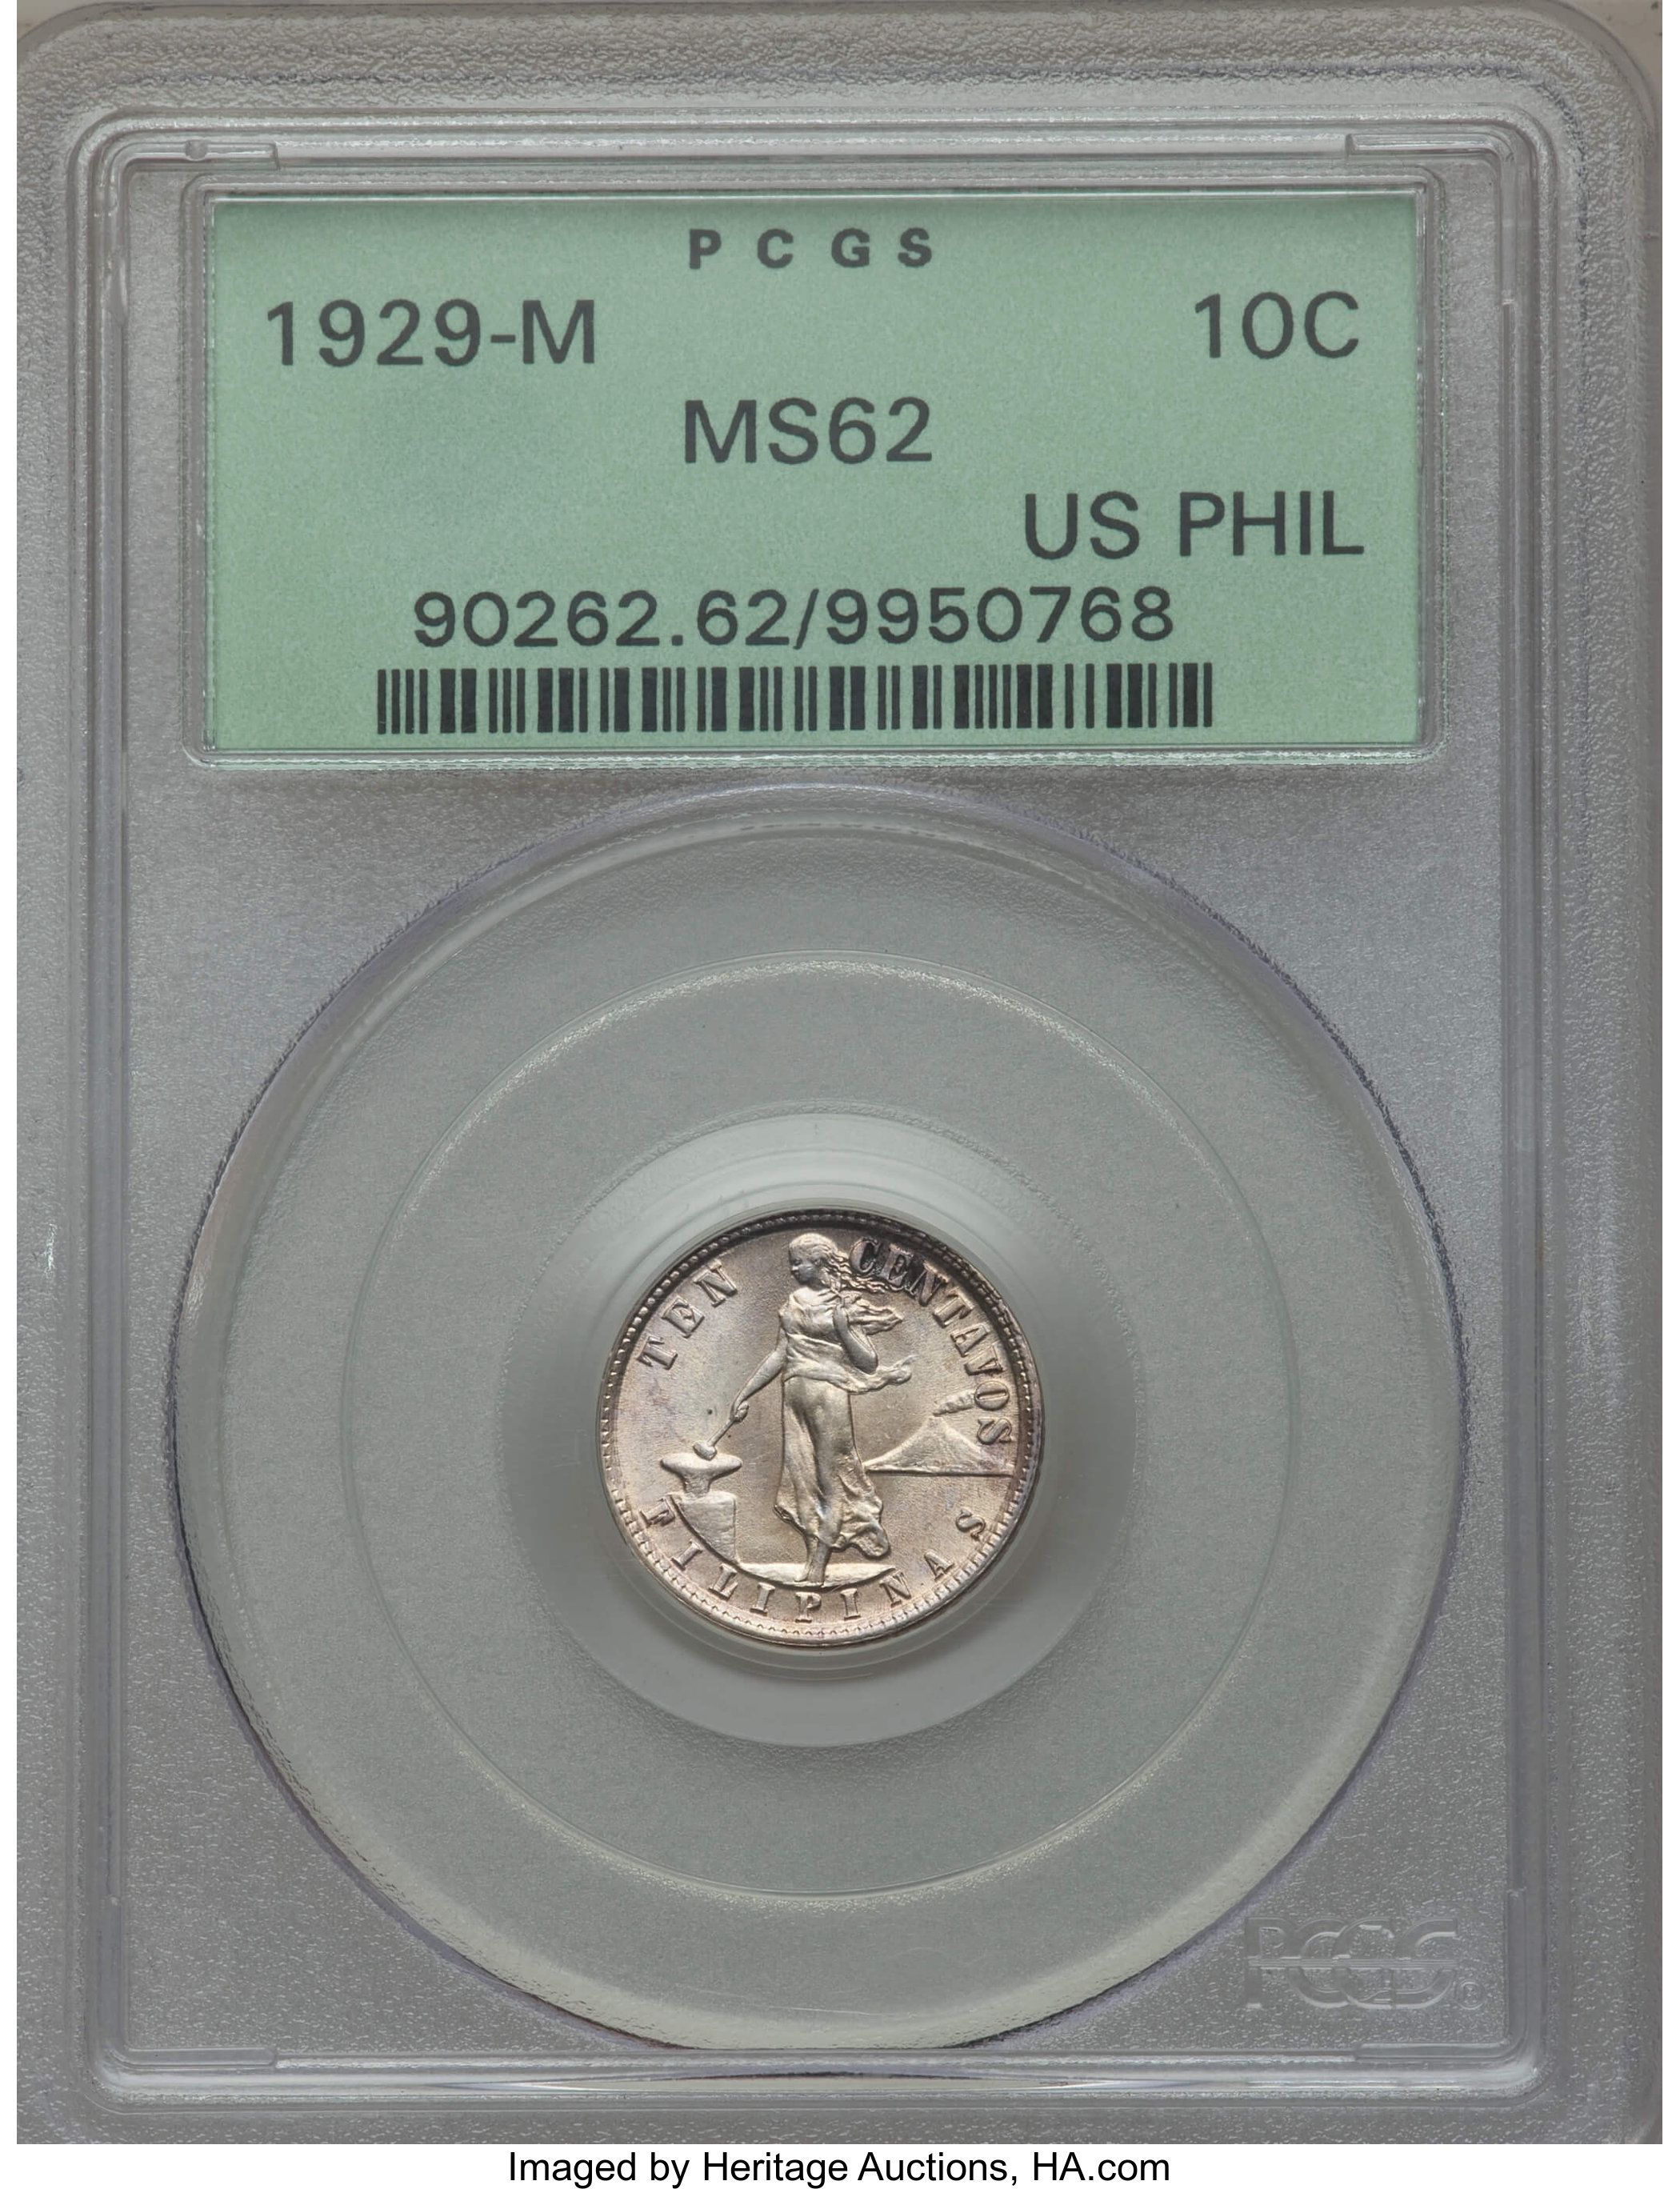 sample image for 1929-M 10c MS